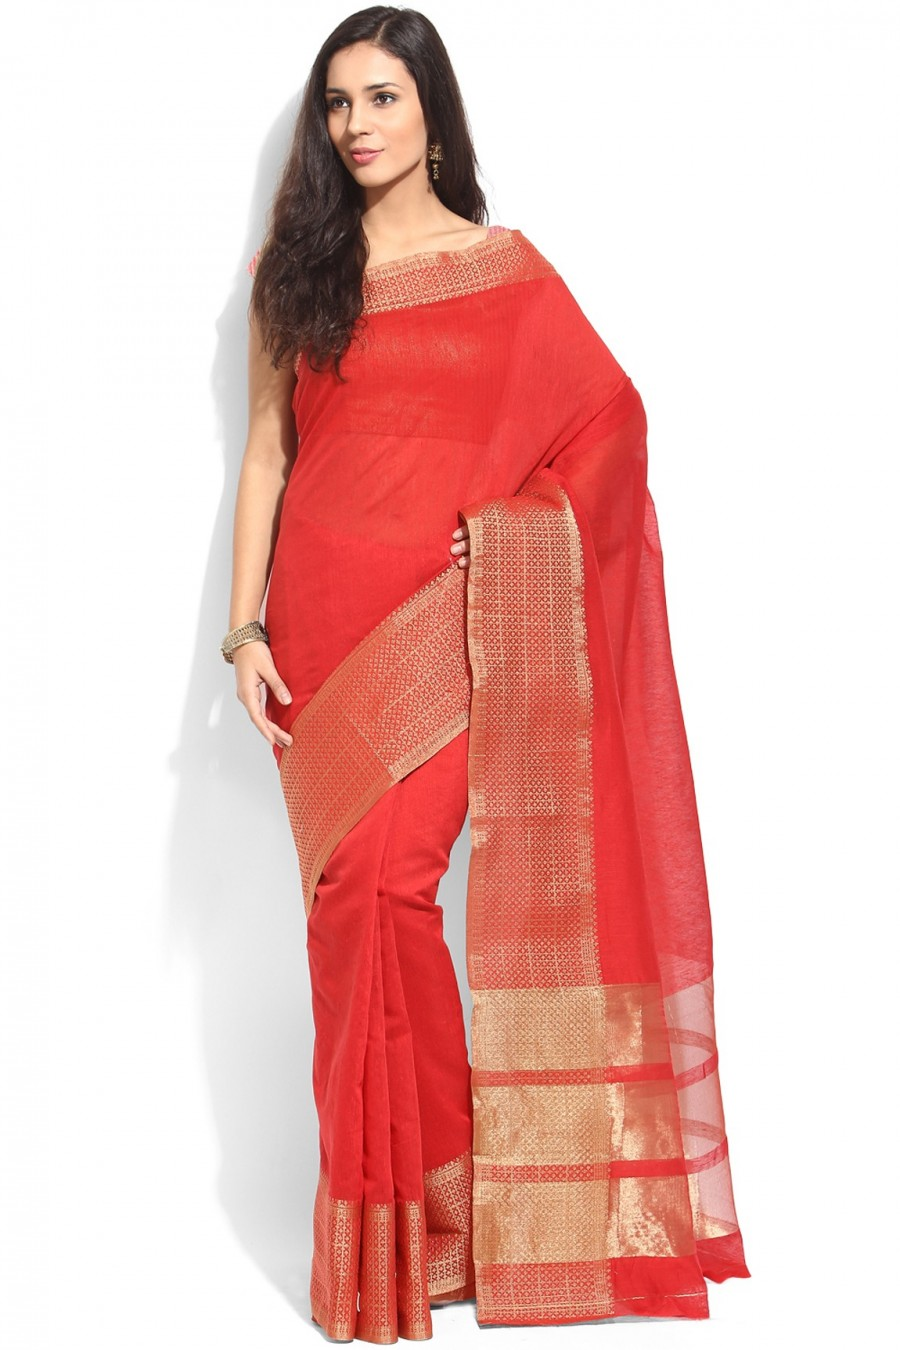 Buy Red Cotton Saree with Cotton Blouse Piece Online